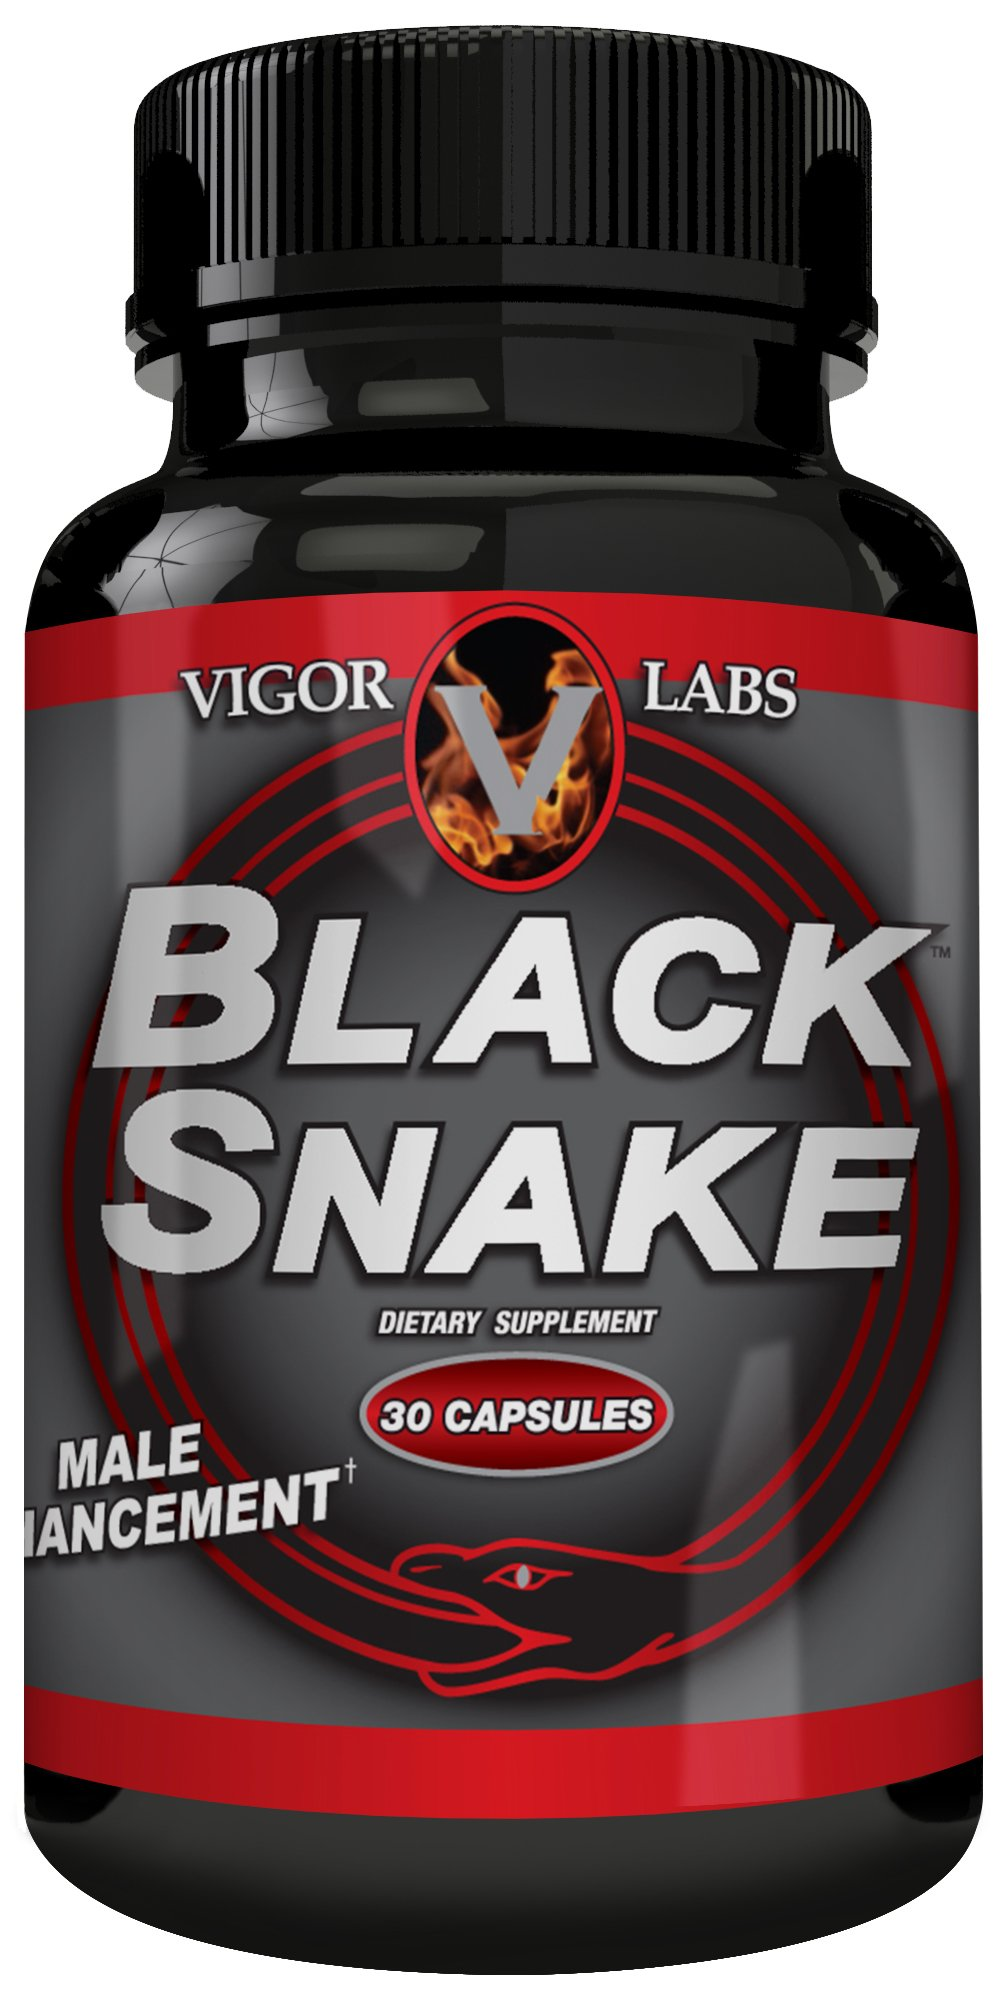 Vigor Labs Black Snake #1 Male Formula for Penis Size by Vigor Labs